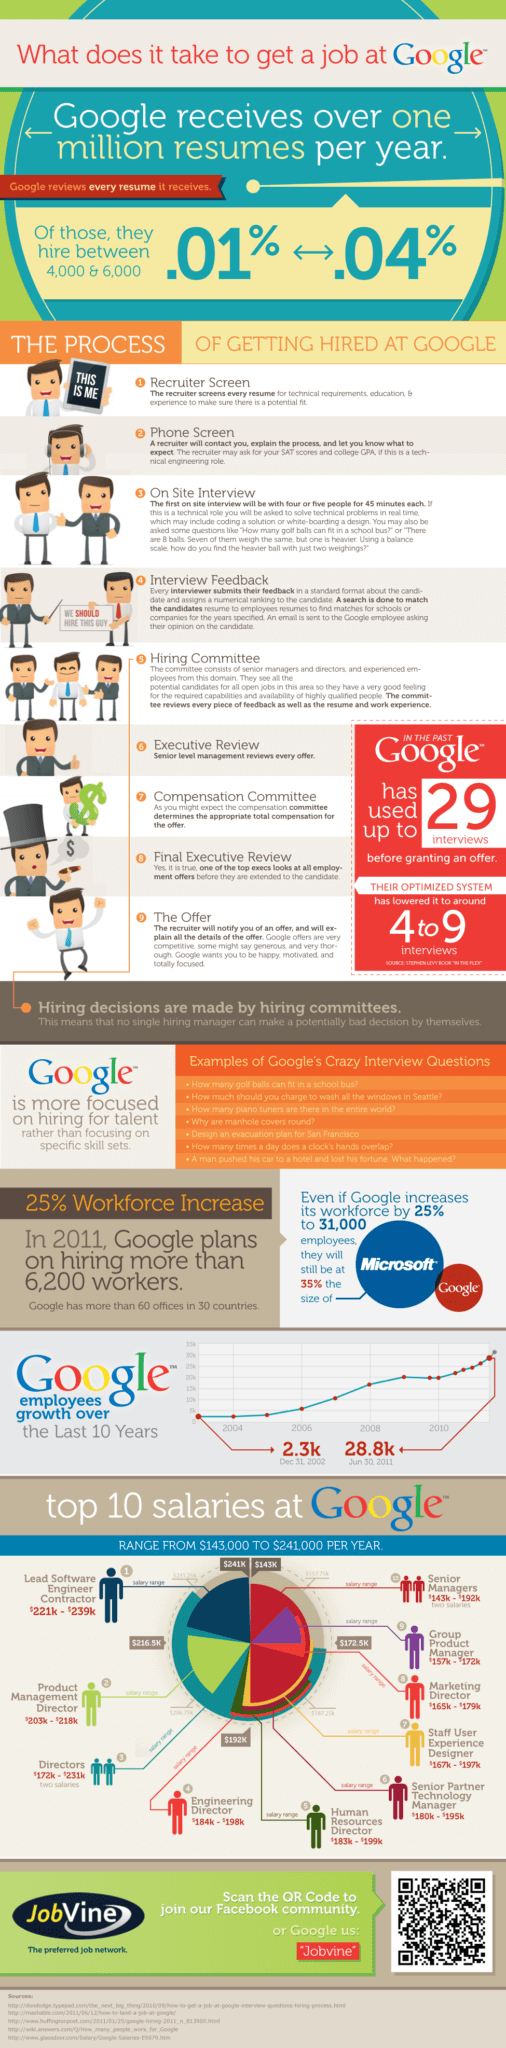 Who wouldn't want to work at Google? 5